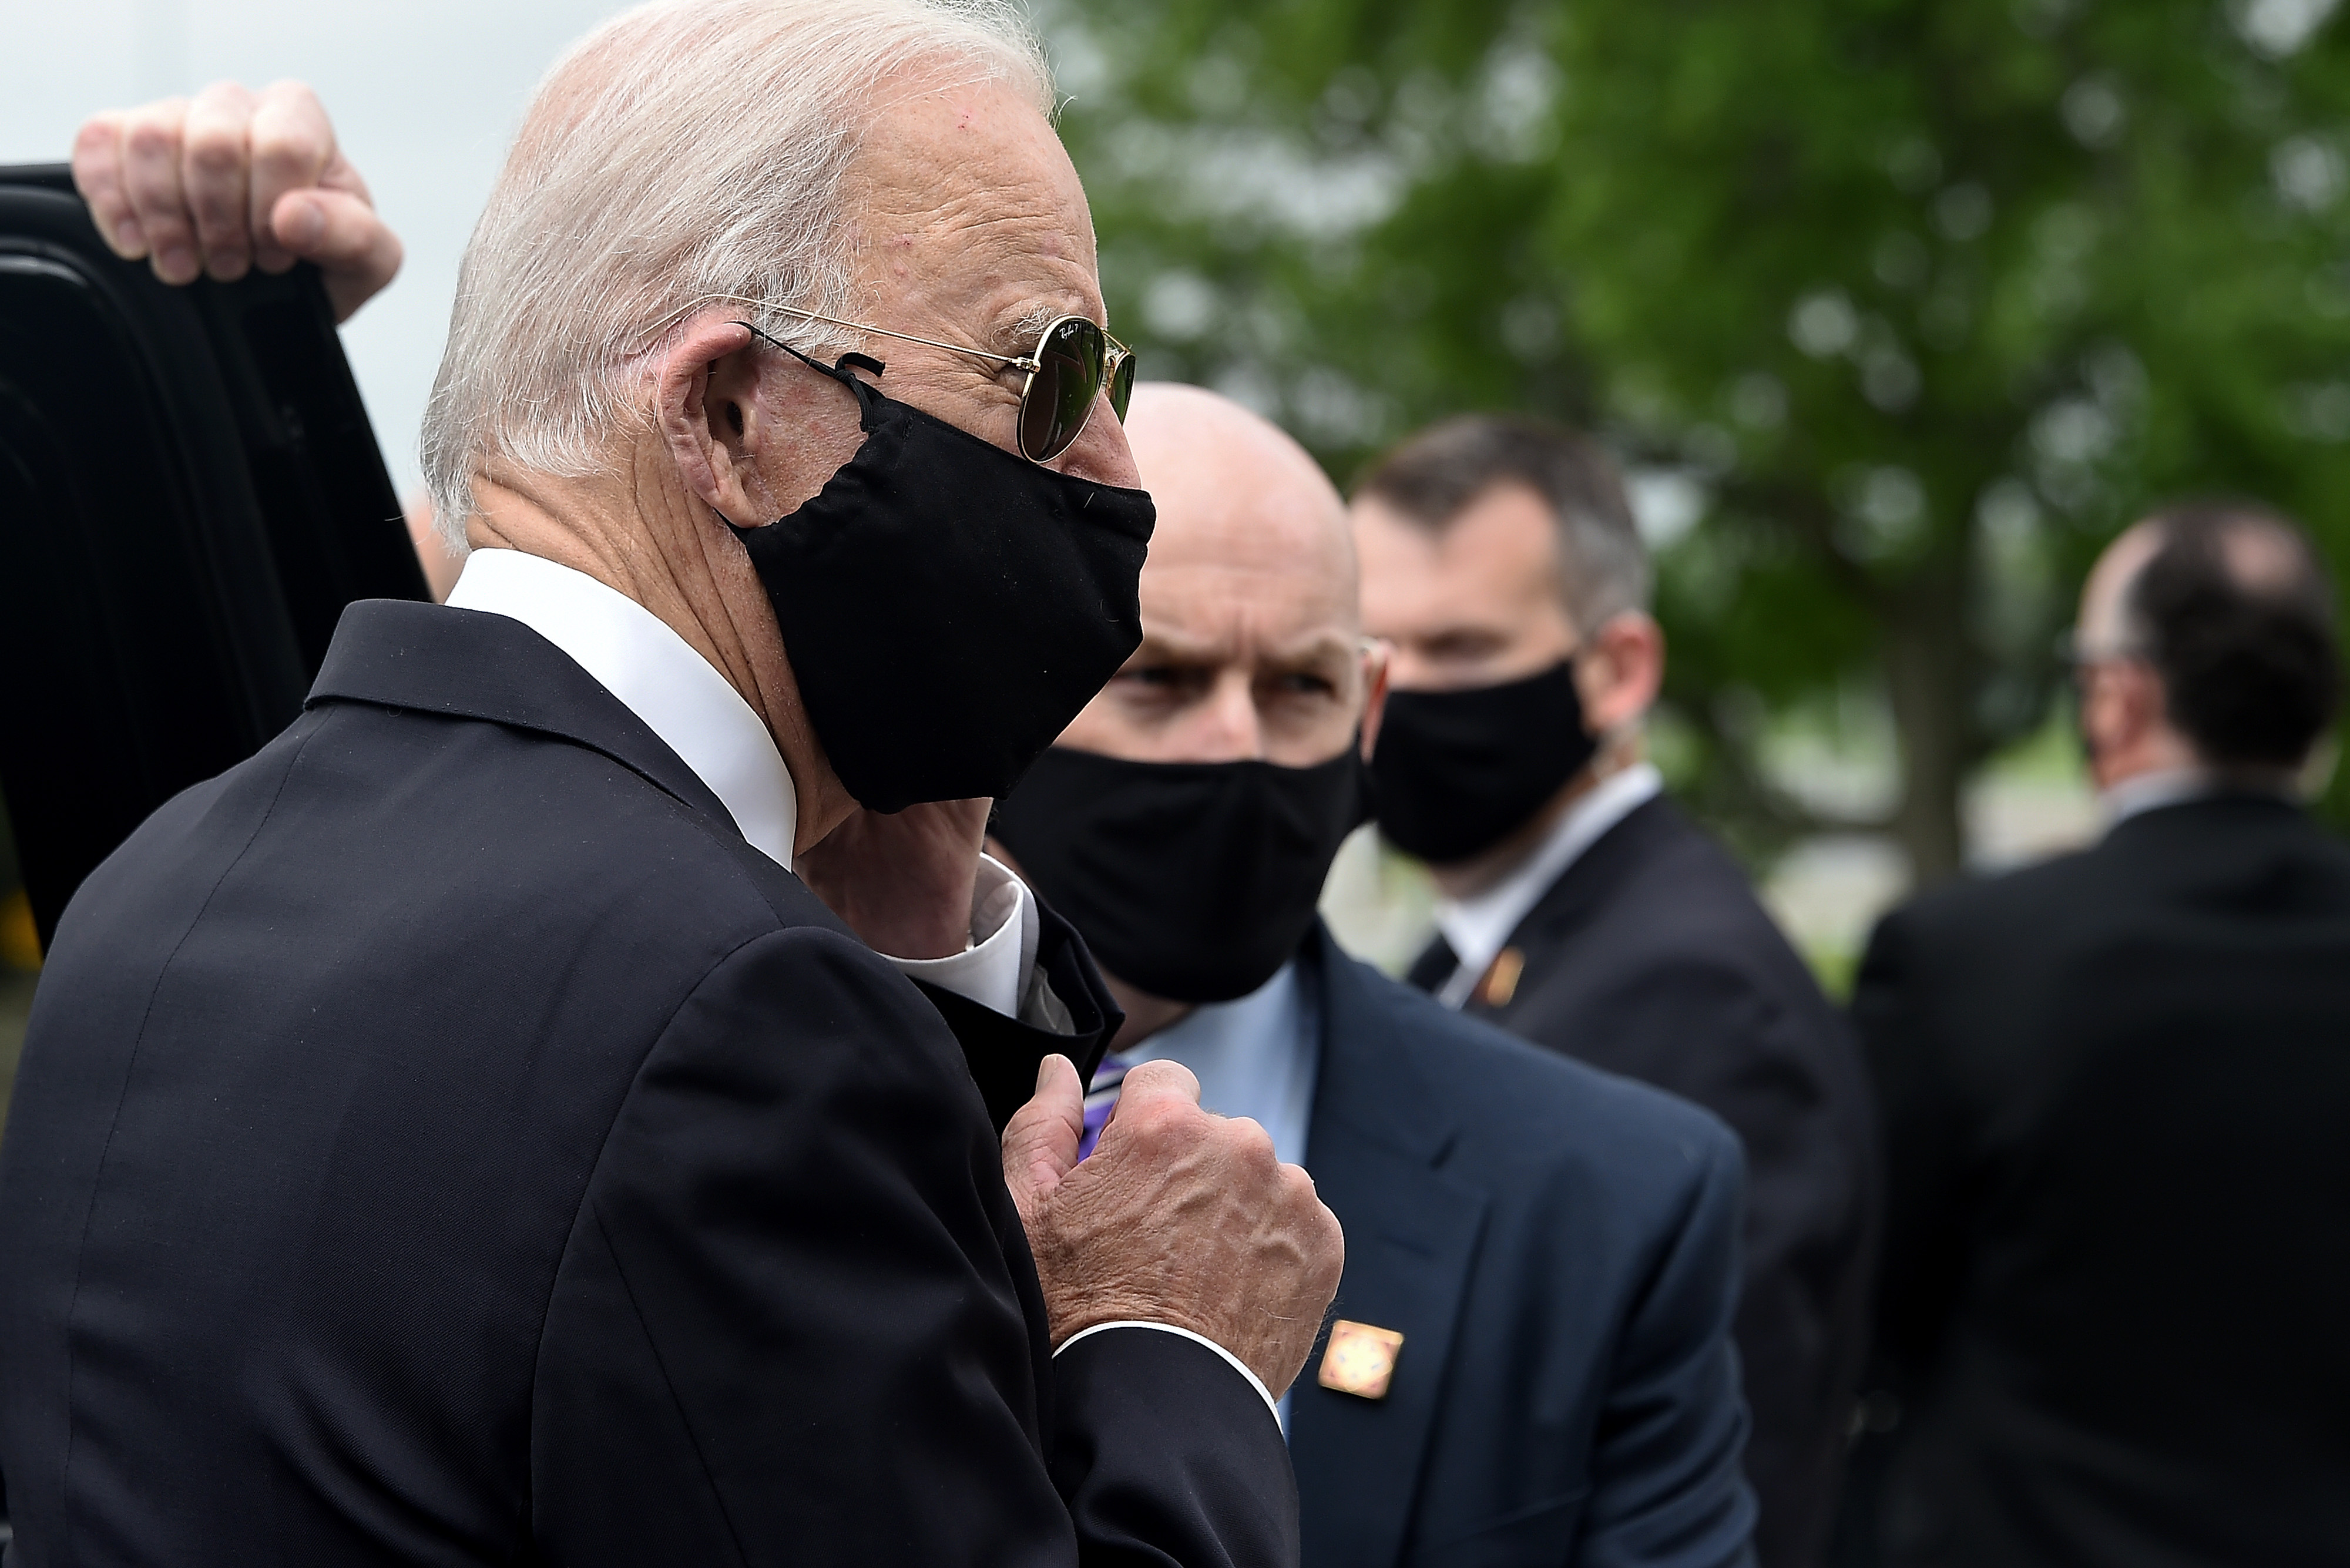 Democratic presidential candidate and former US Vice President Joe Biden (L) departs the Delaware Memorial Bridge Veteran's Memorial Park after paying respects to fallen service members in New Castle, Delaware, May 25, 2020. - Joe Biden, the presumptive Democratic presidential nominee, emerged from more than two months of seclusion on May 25, wearing a black face mask during a visit to lay a wreath on the day the United States honors its war dead. Biden's last public appearance was March 15 when he faced off against his former Democratic rival Bernie Sanders for a debate in a television studio held with no live audience. (Photo by Olivier DOULIERY / AFP) (Photo by OLIVIER DOULIERY/AFP via Getty Images)